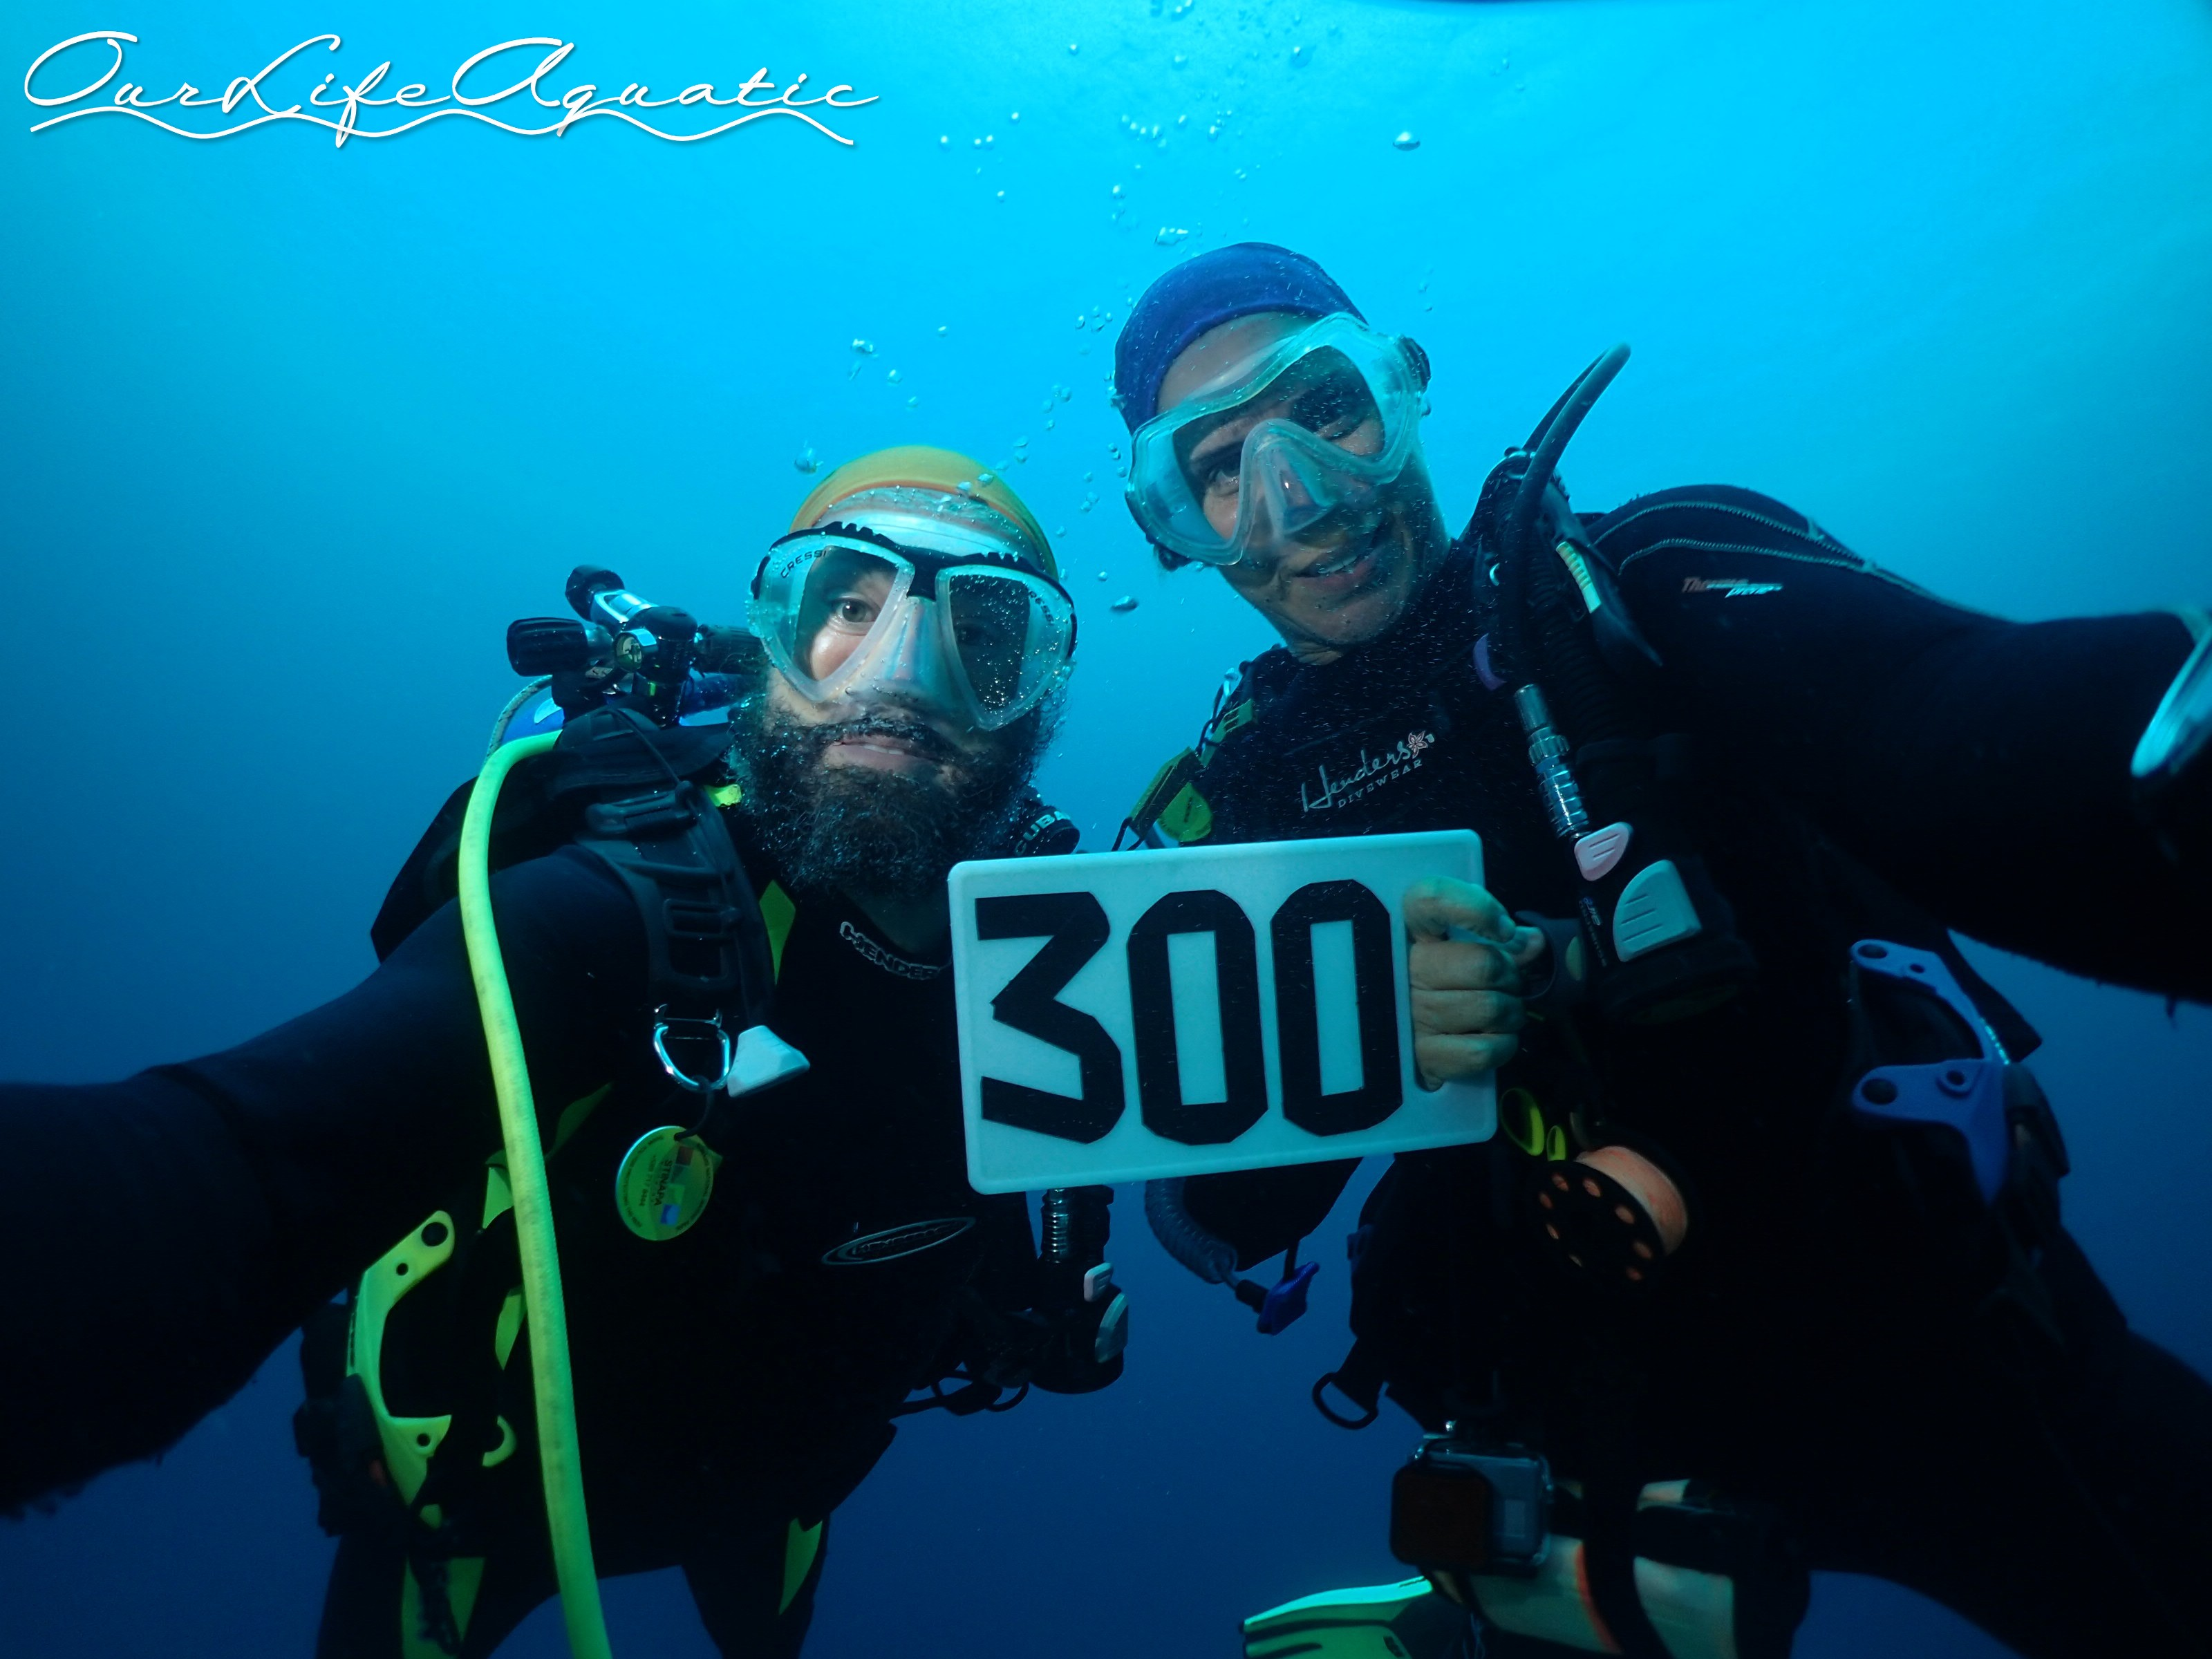 We dove so much we reached our 300th dives!